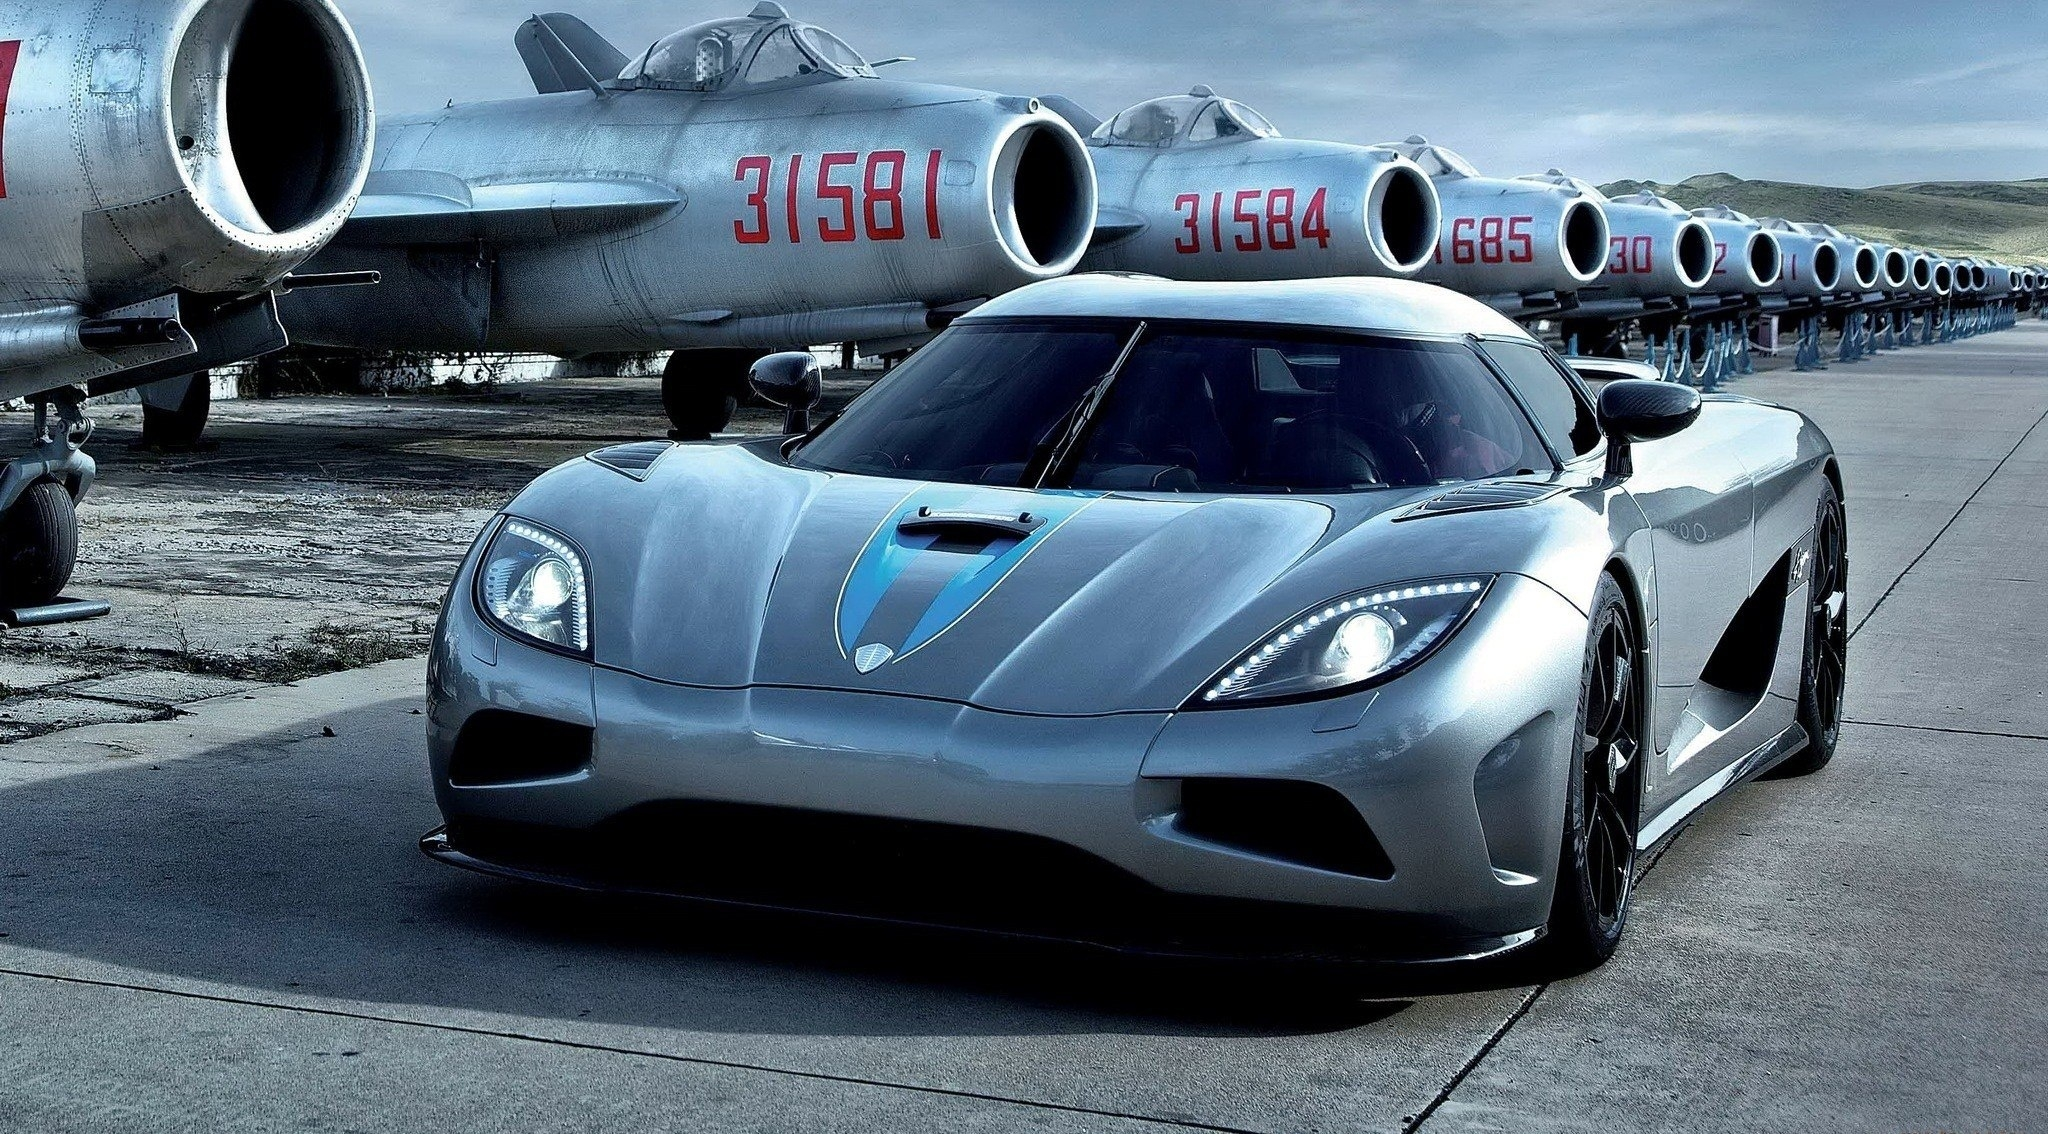 84911 download wallpaper Cars, Koenigsegg, Auto, Car, Machine, Stylish screensavers and pictures for free